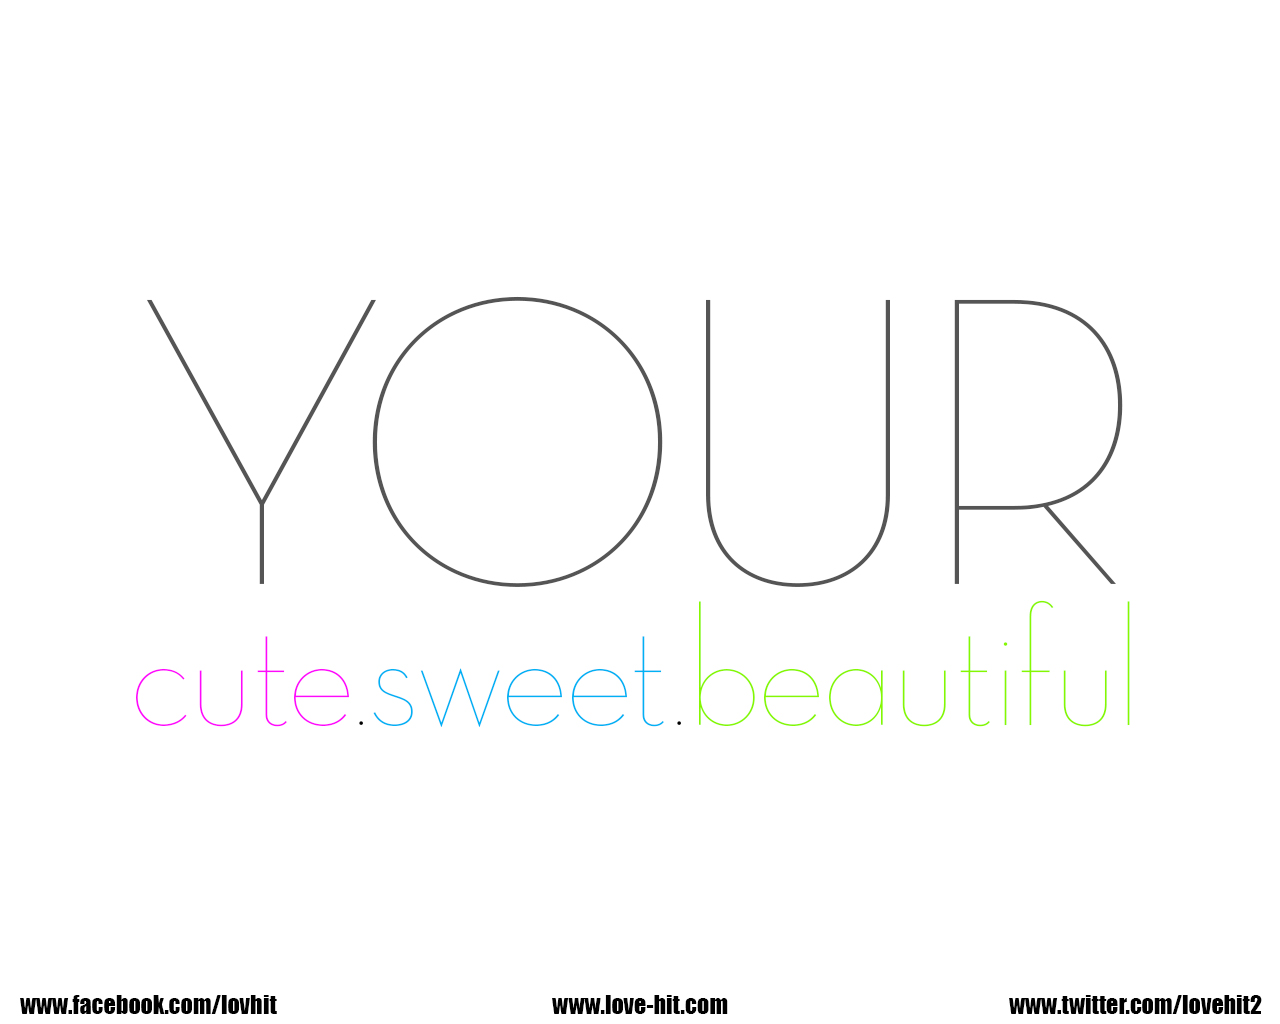 Your cute, sweet and beautiful